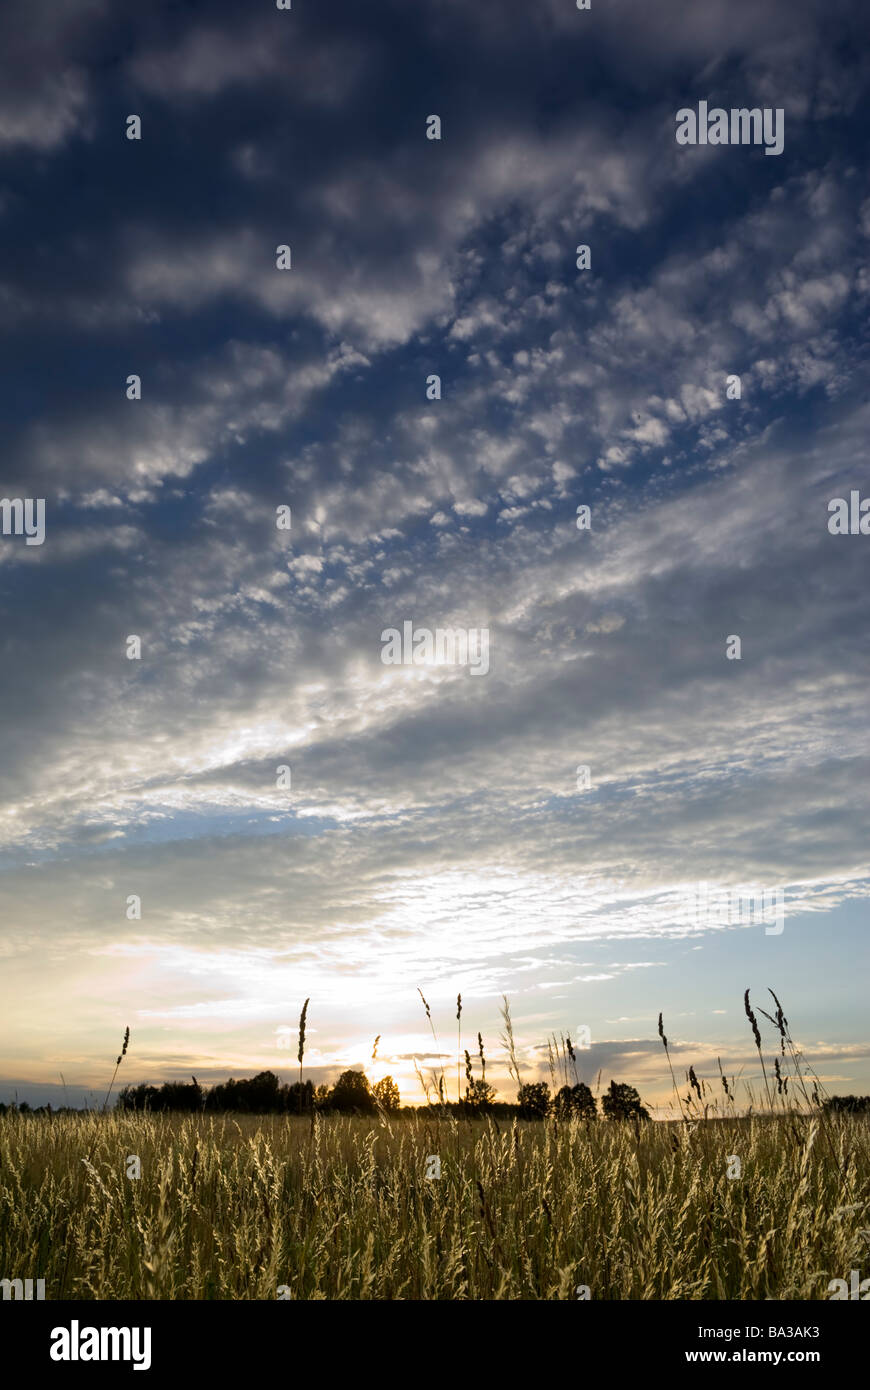 Sun setting over the wild grasses aRGB - Stock Image